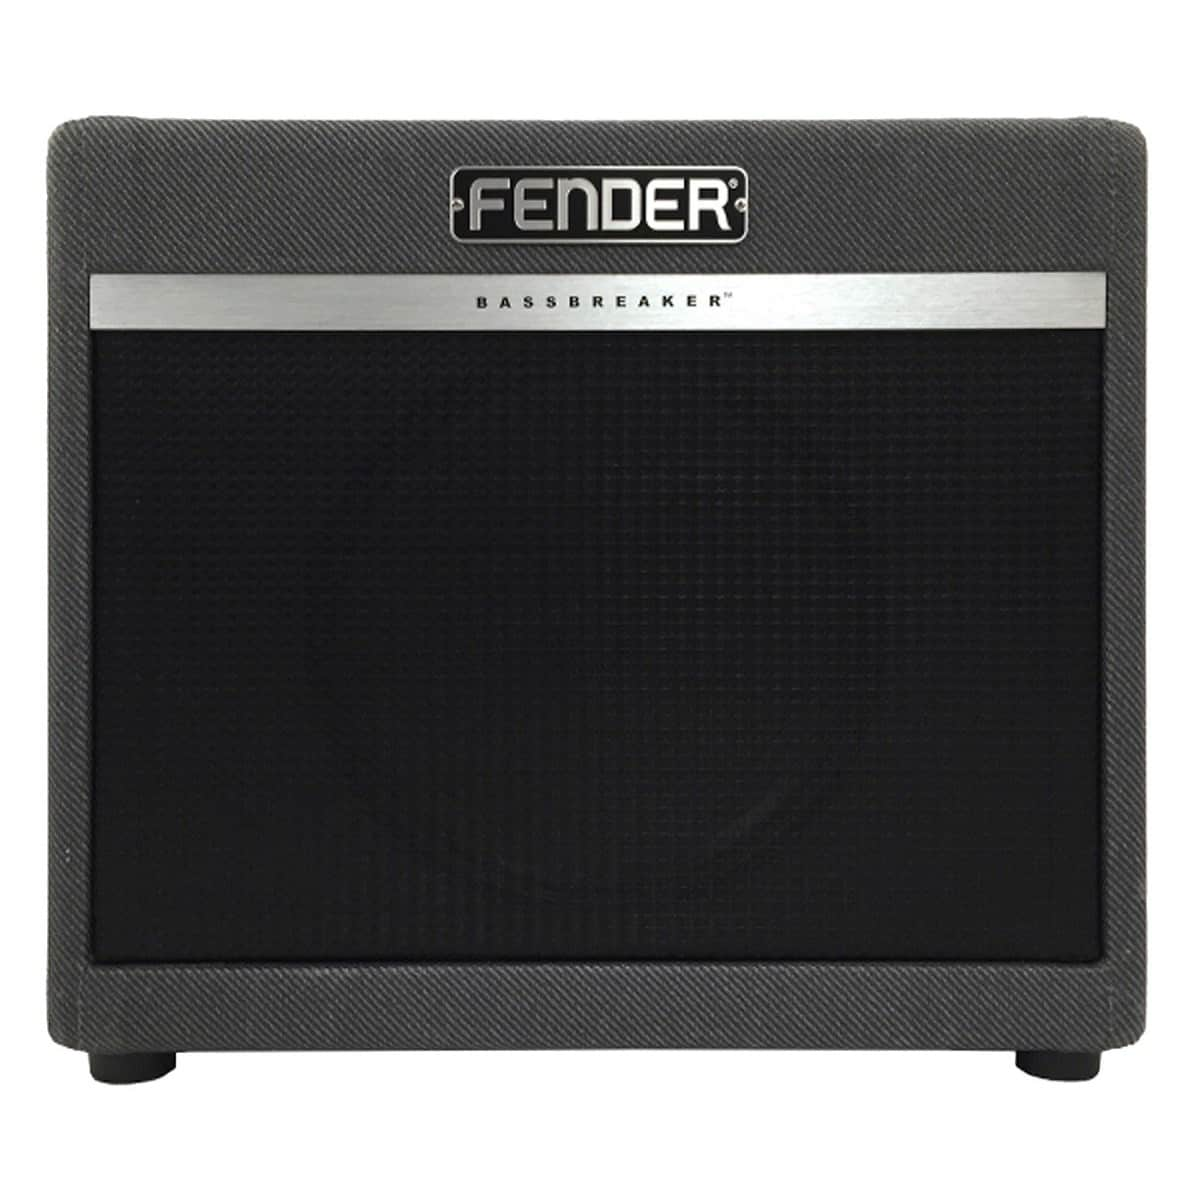 fender one button footswitch manual